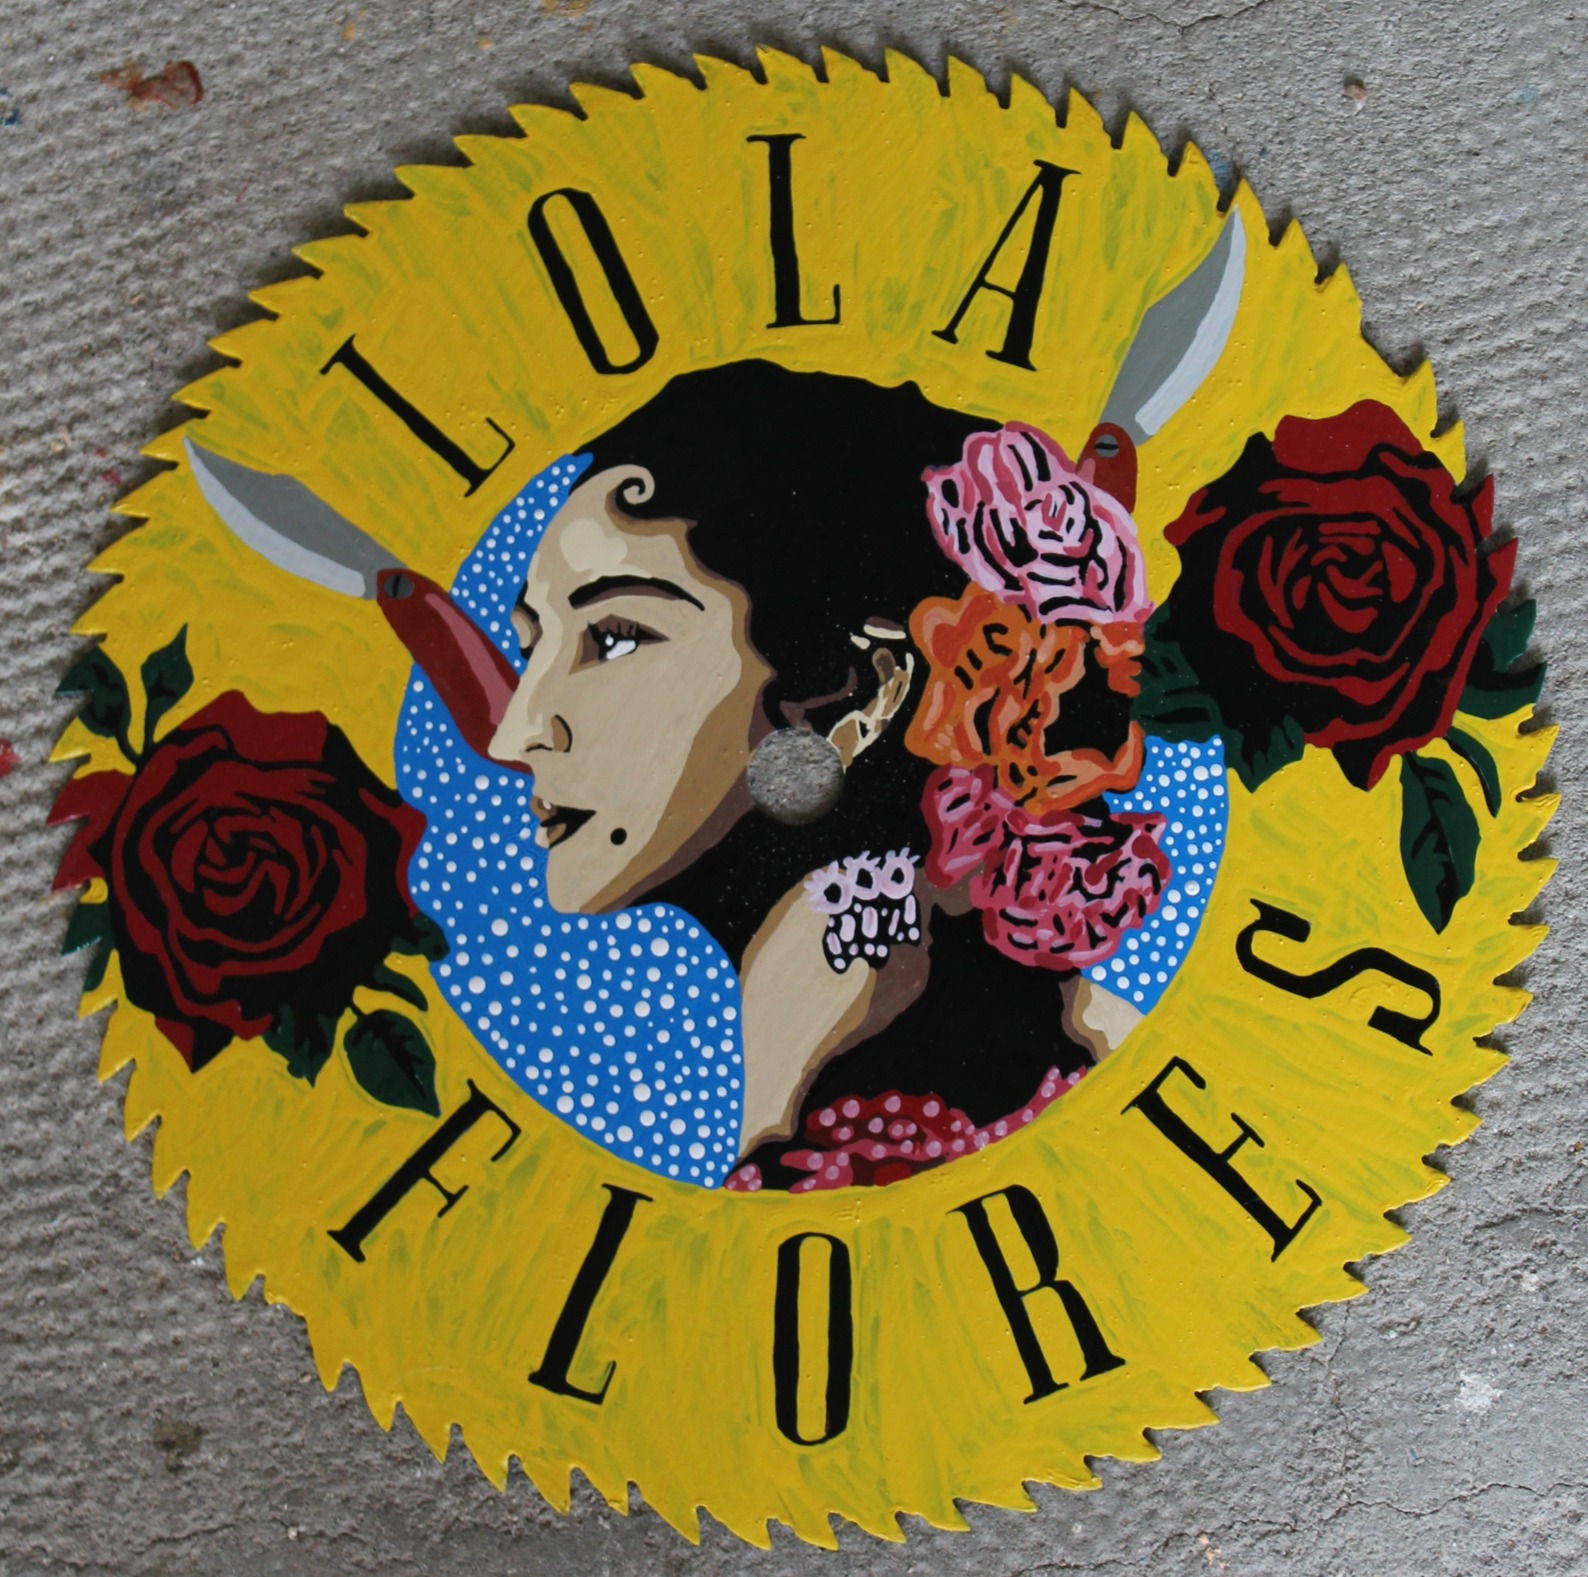 Lola Flores is Rock & Roll